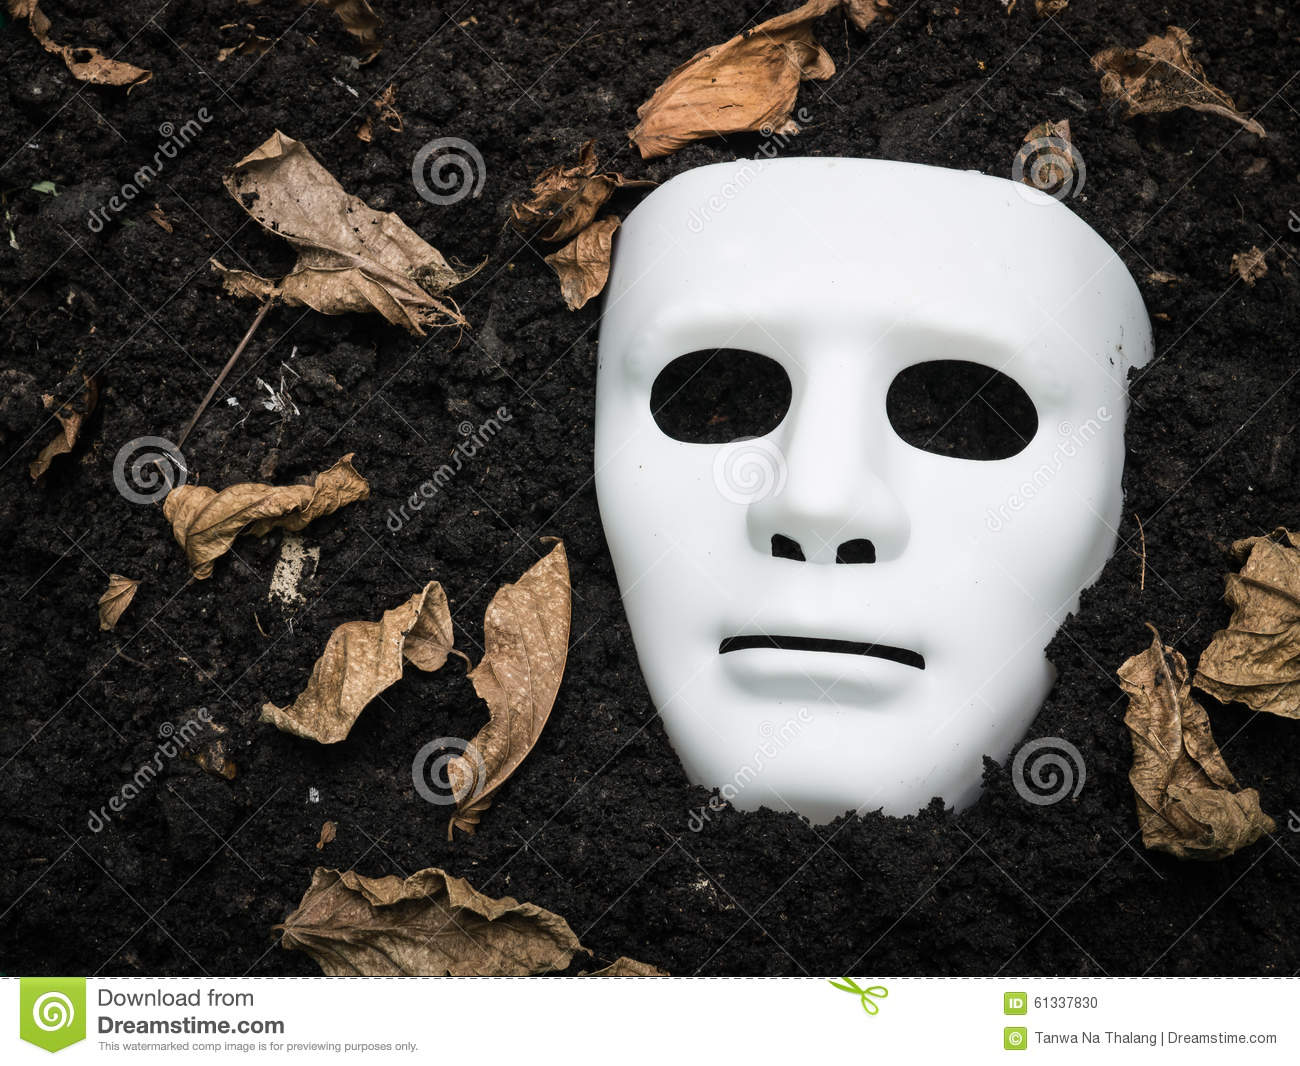 scary halloween mask on the ground stock photo - image of night